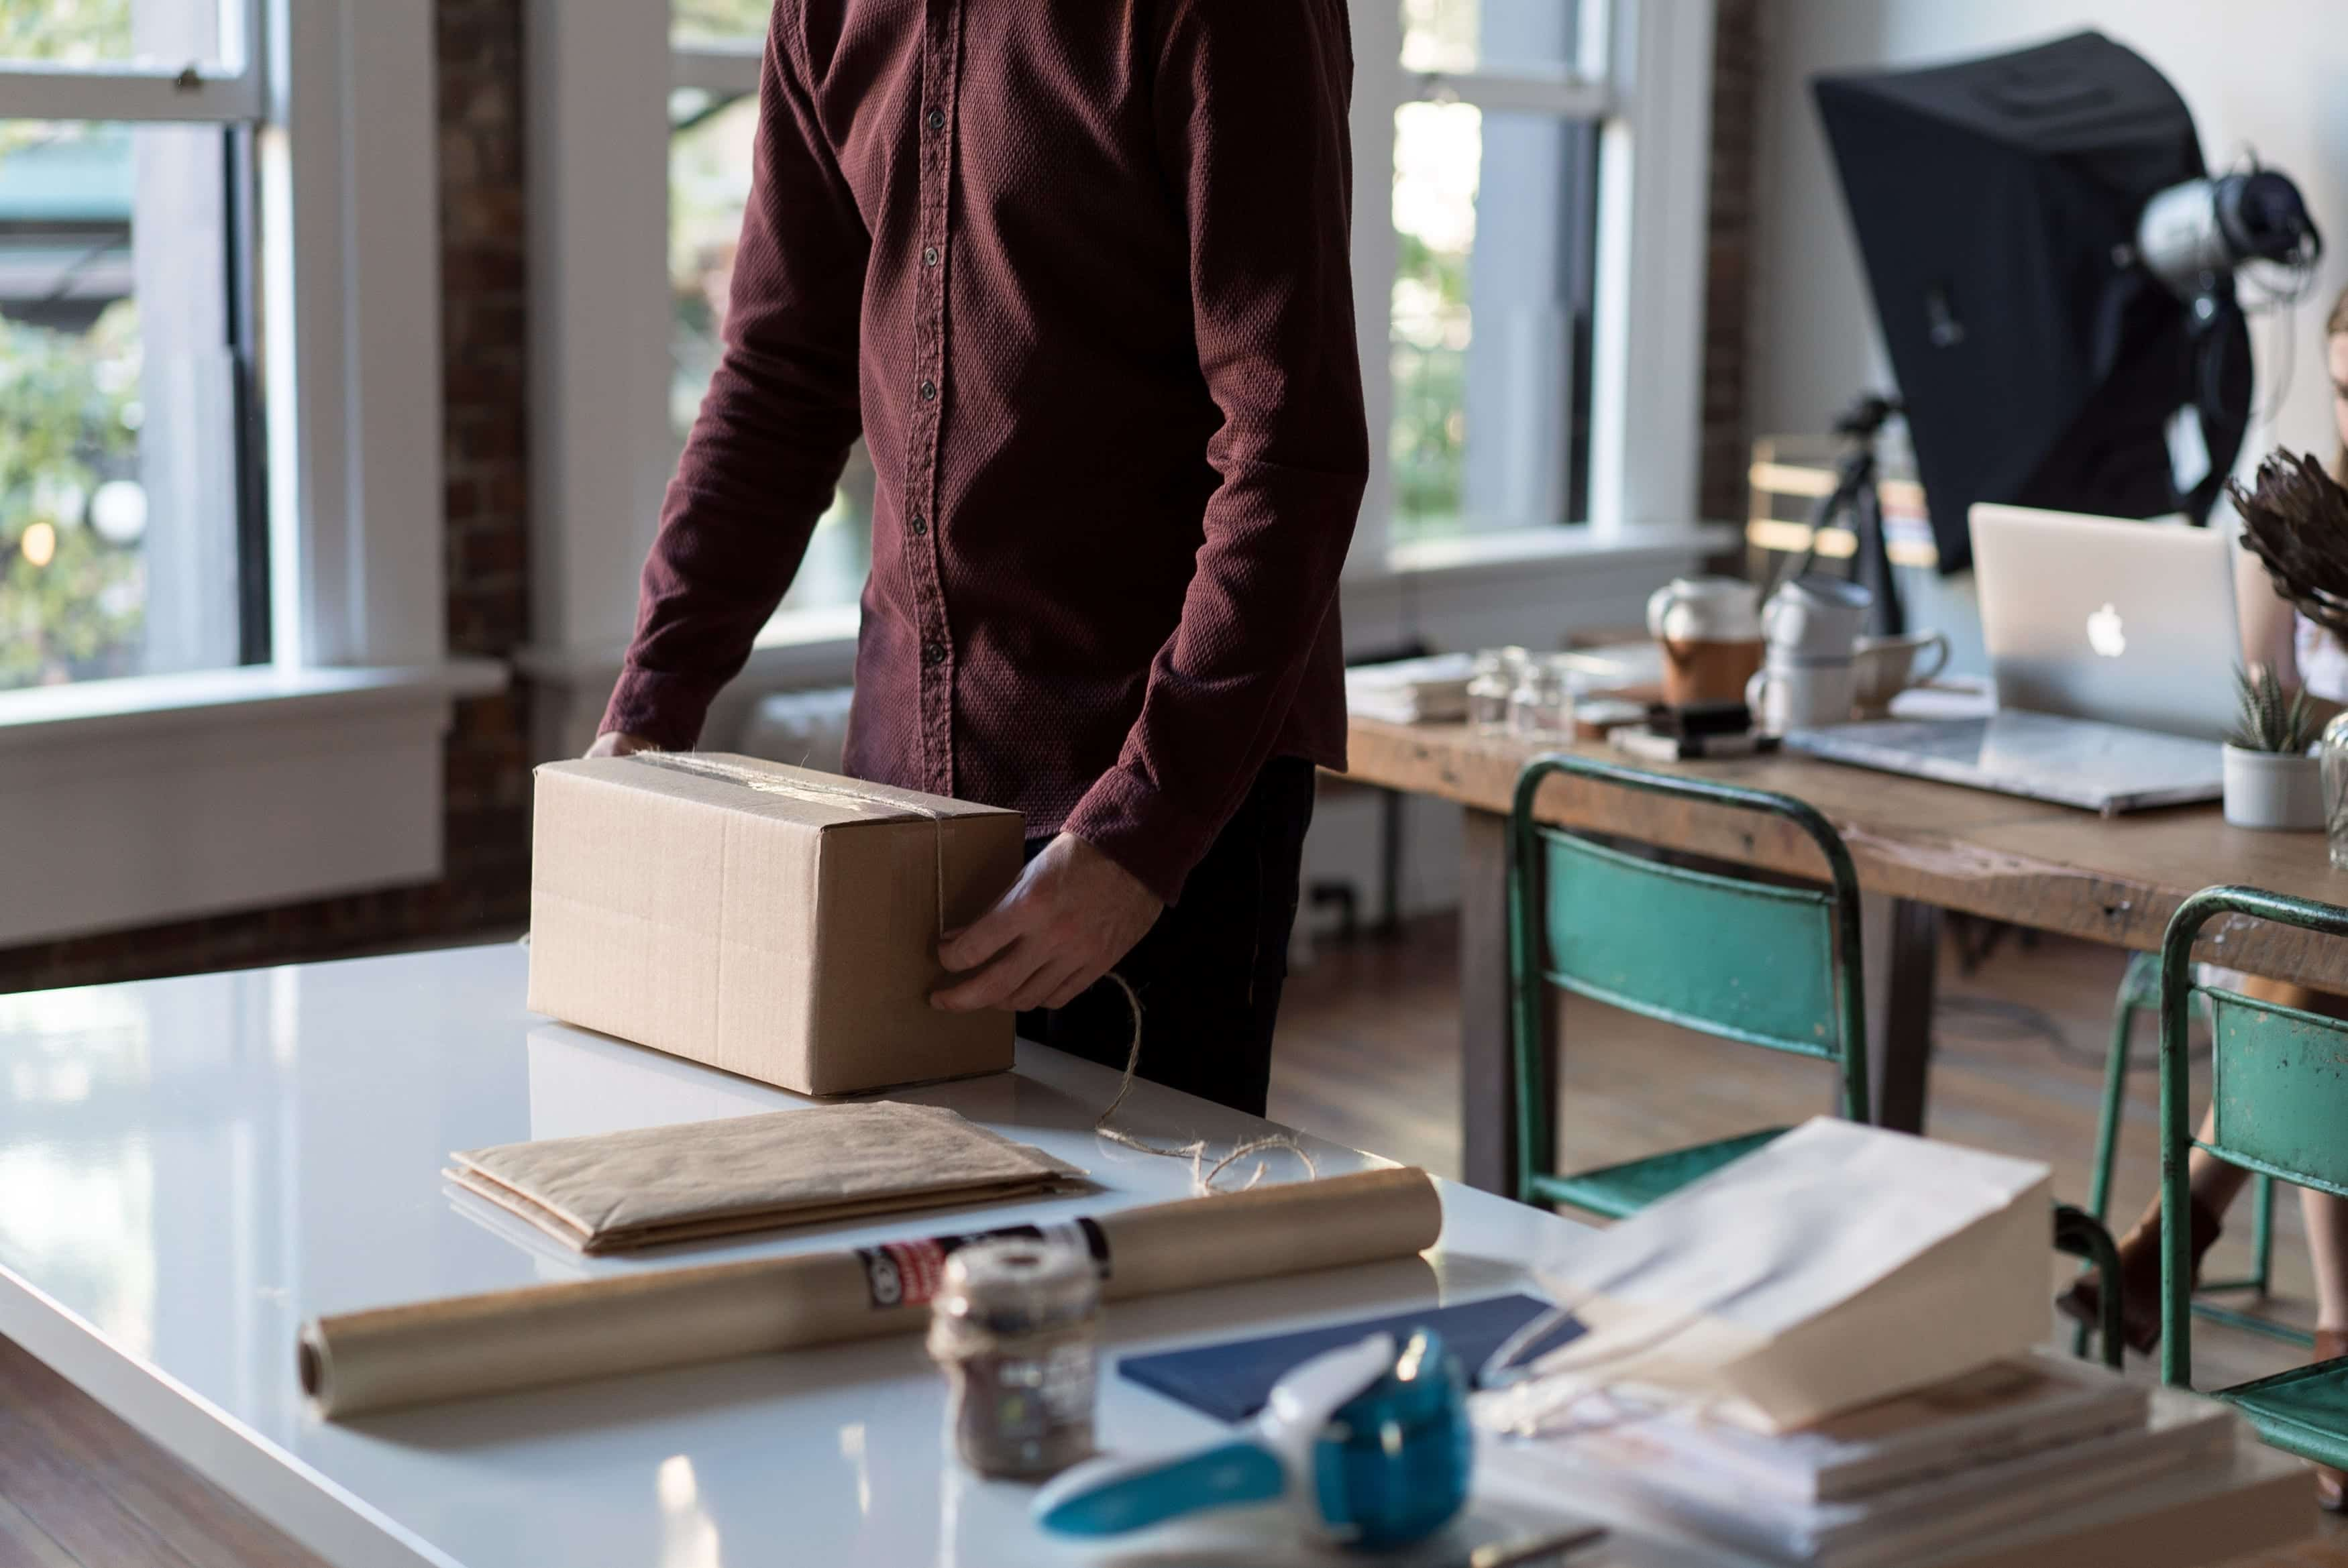 Man in small office preparing to ship a package; image by Bench Accounting, via Unsplash.com.